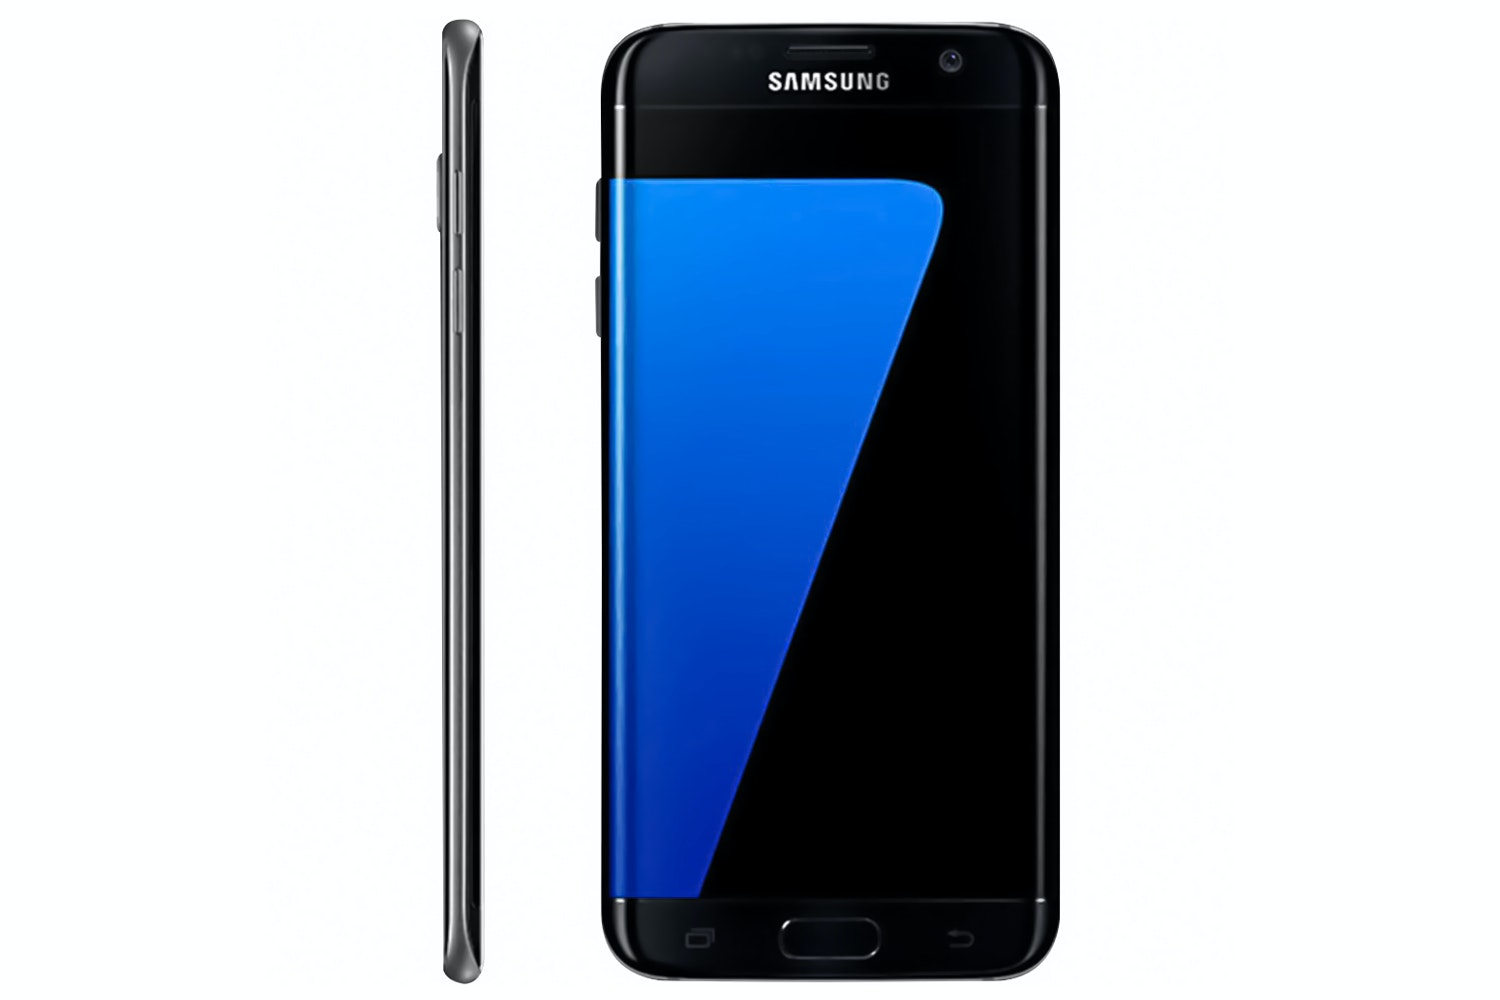 Samsung Galaxy S7 Edge | 32GB | Black